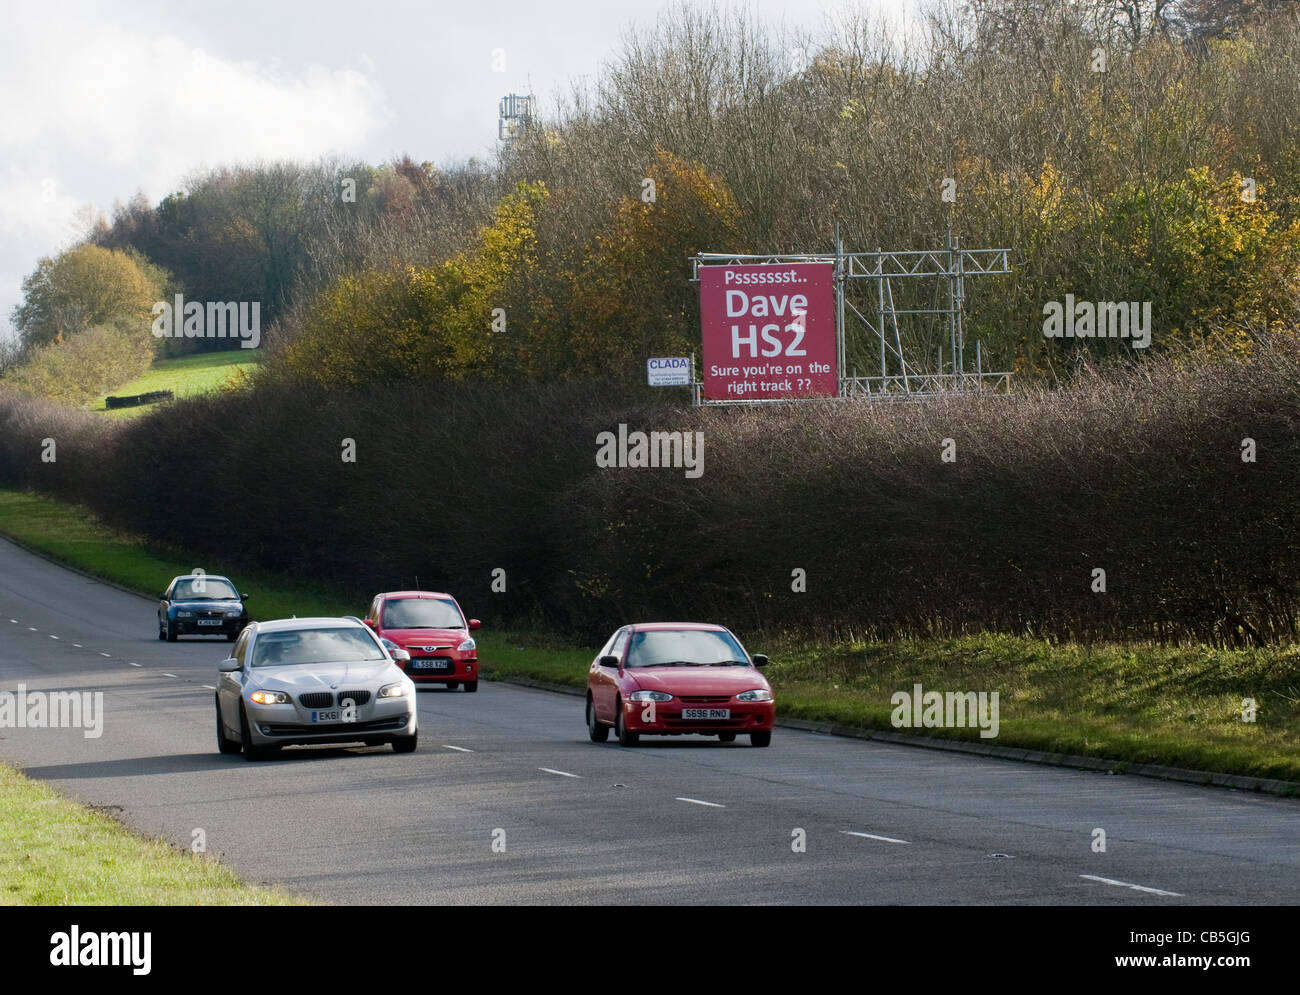 Sign on the A413 near Amersham, urging 'Dave' the Prime Minister to reconsider the HS2 rail proposal plans. - Stock Image